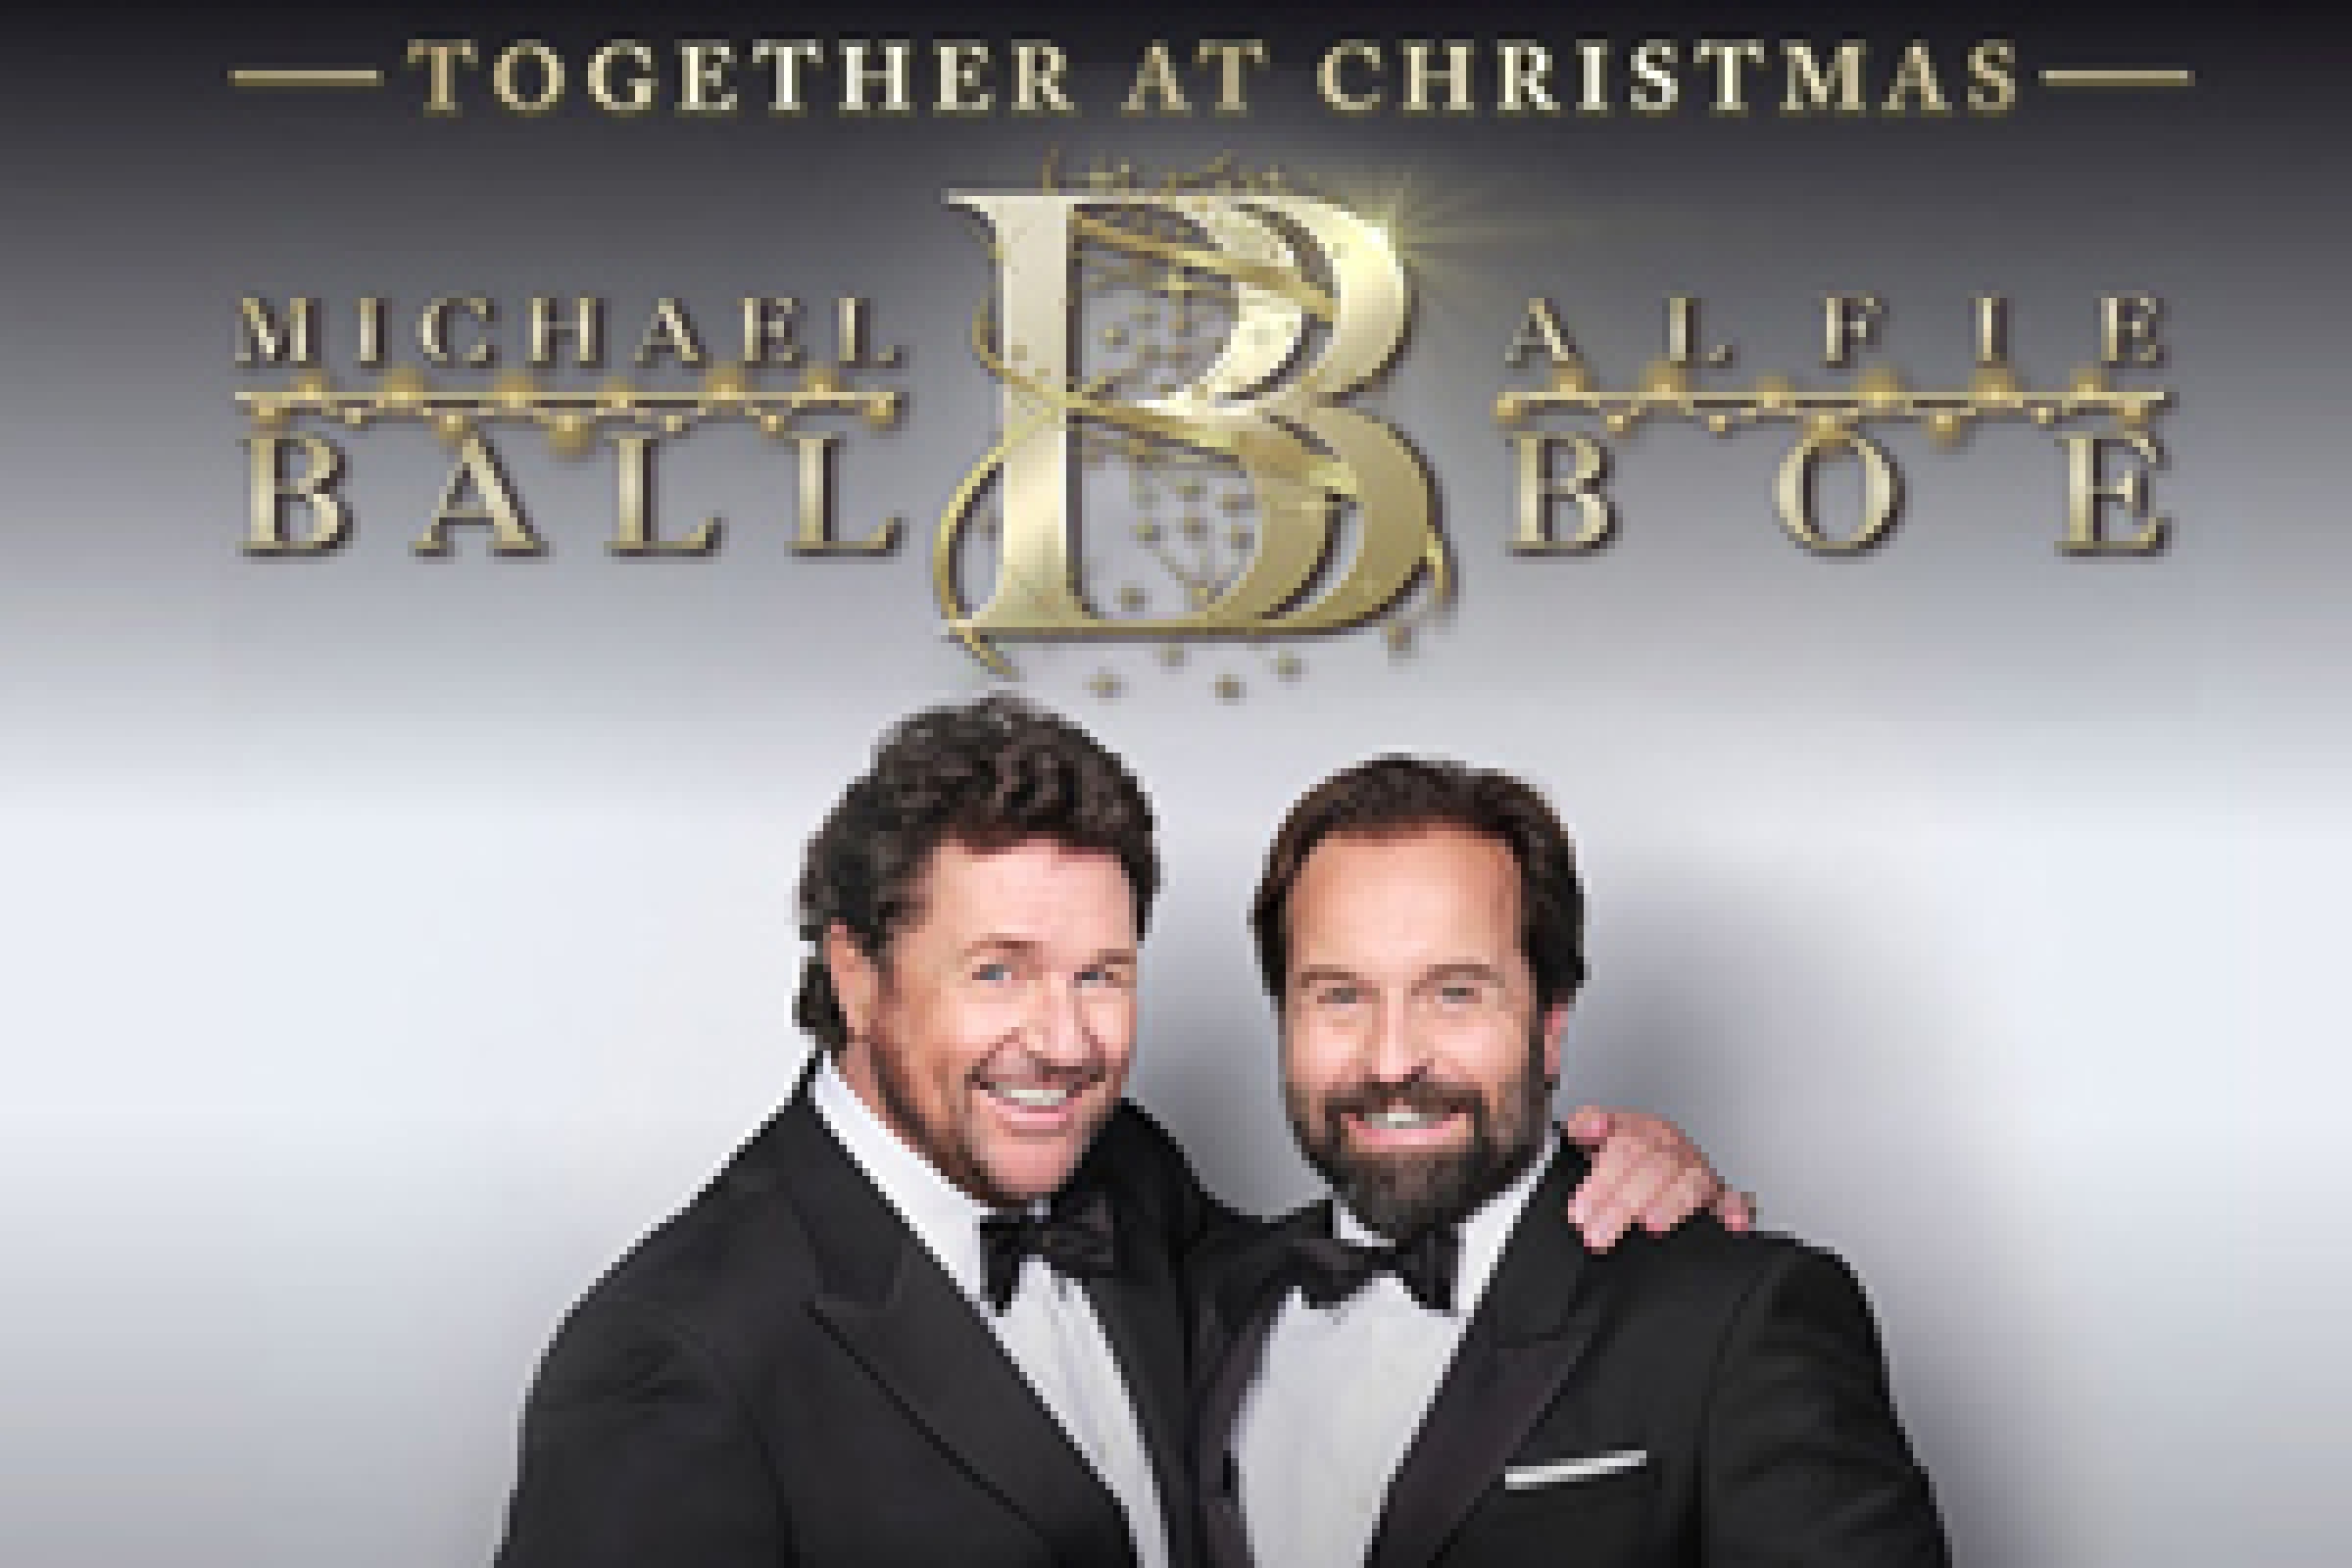 michael ball and alfie boe together at christmas tour tickets Hydro Glasgow